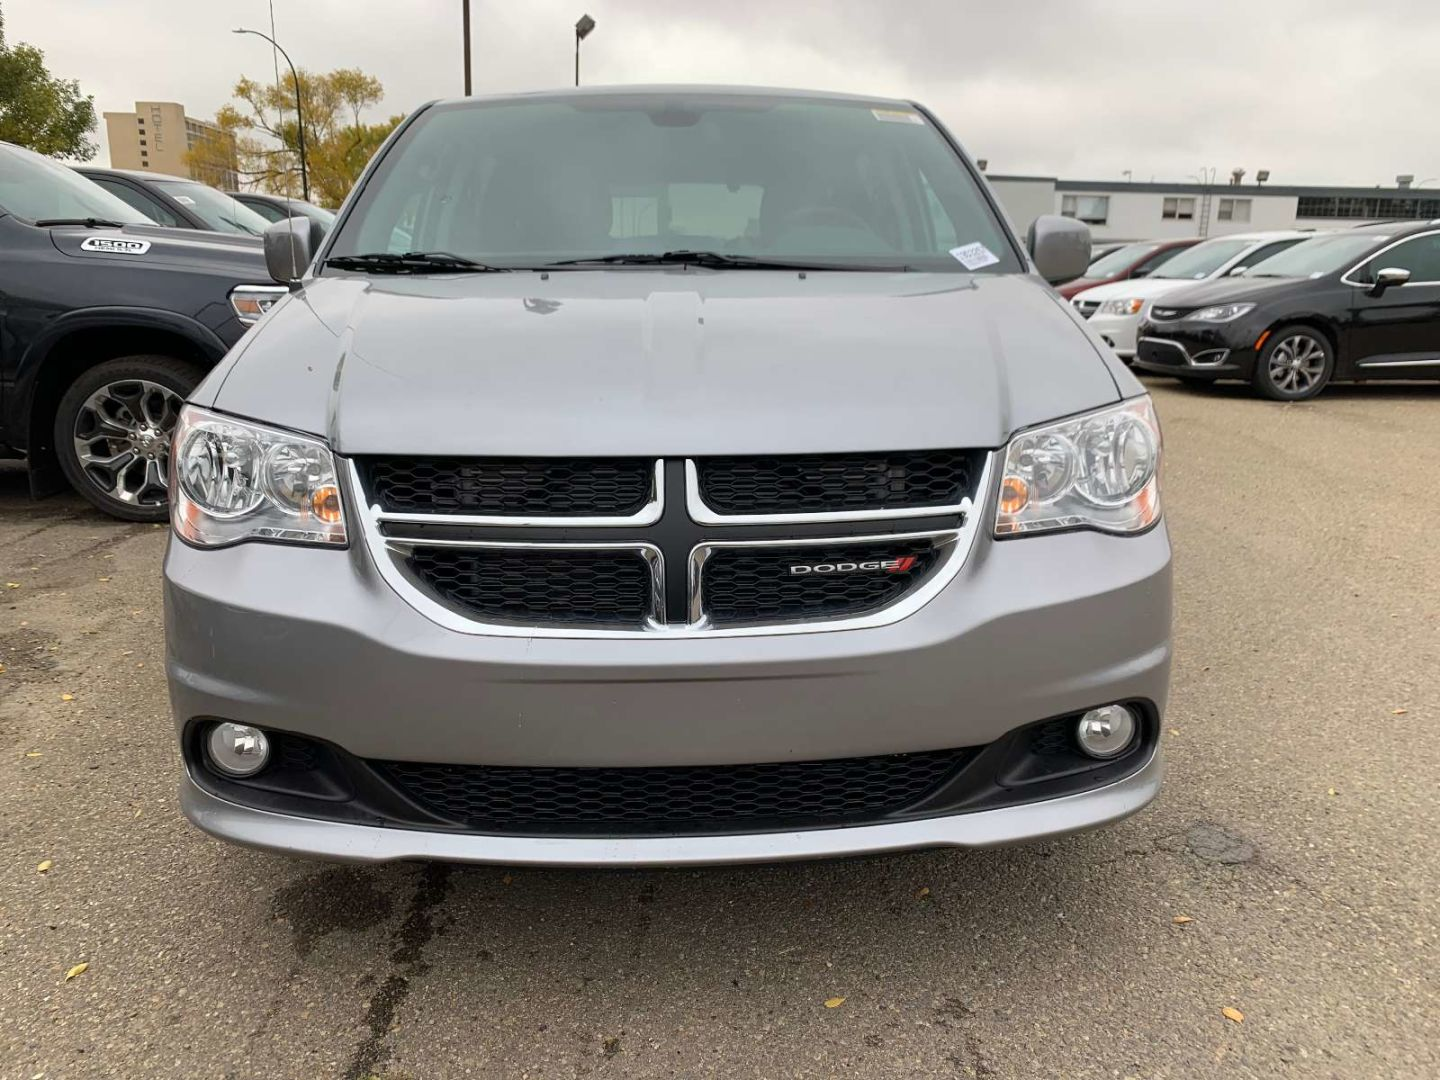 2019 Dodge Grand Caravan SXT Premium Plus for sale in Red Deer, Alberta